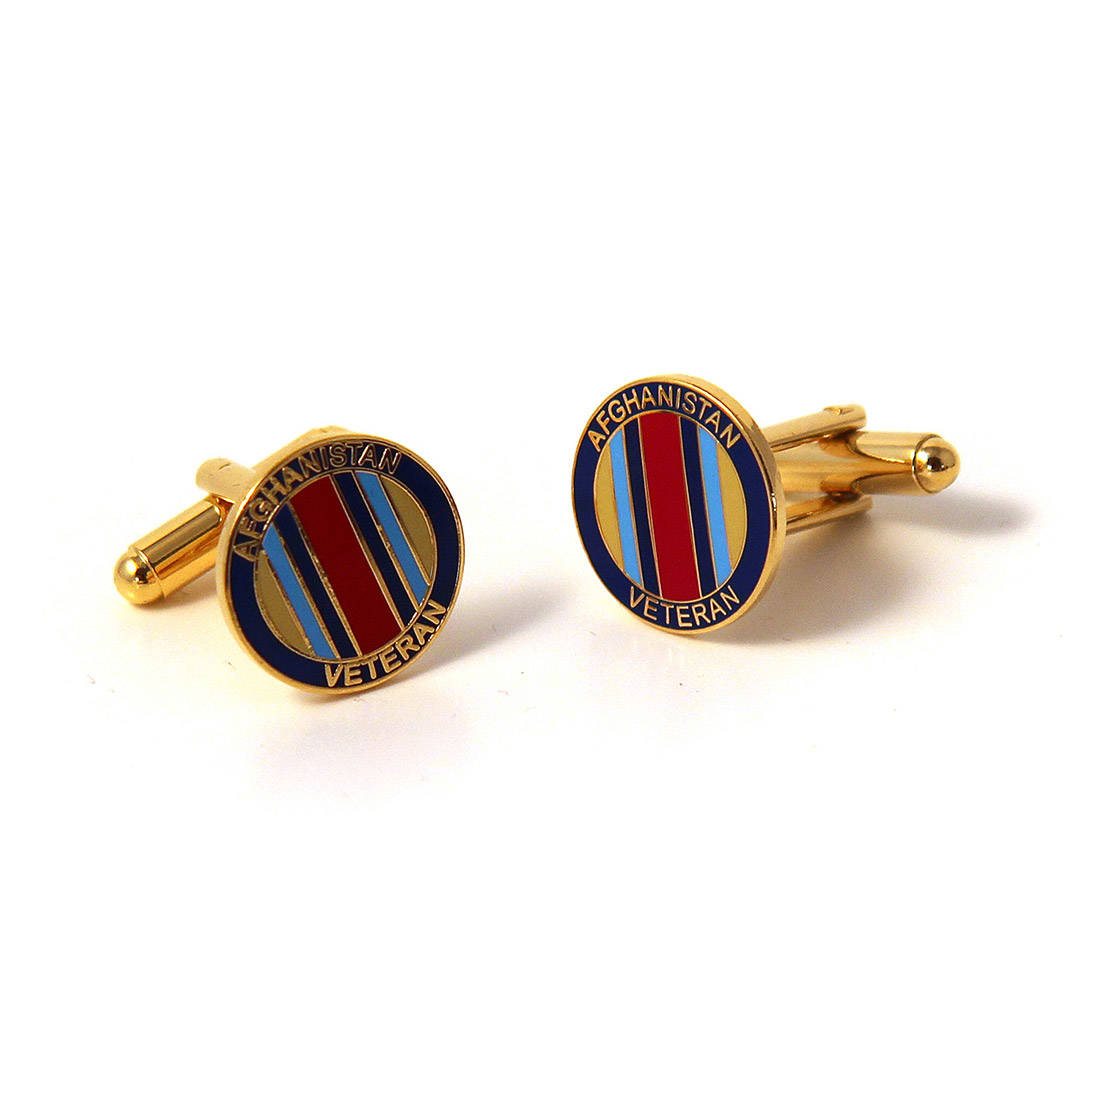 Afghanistan Veteran Cufflinks (Enamel Badge)